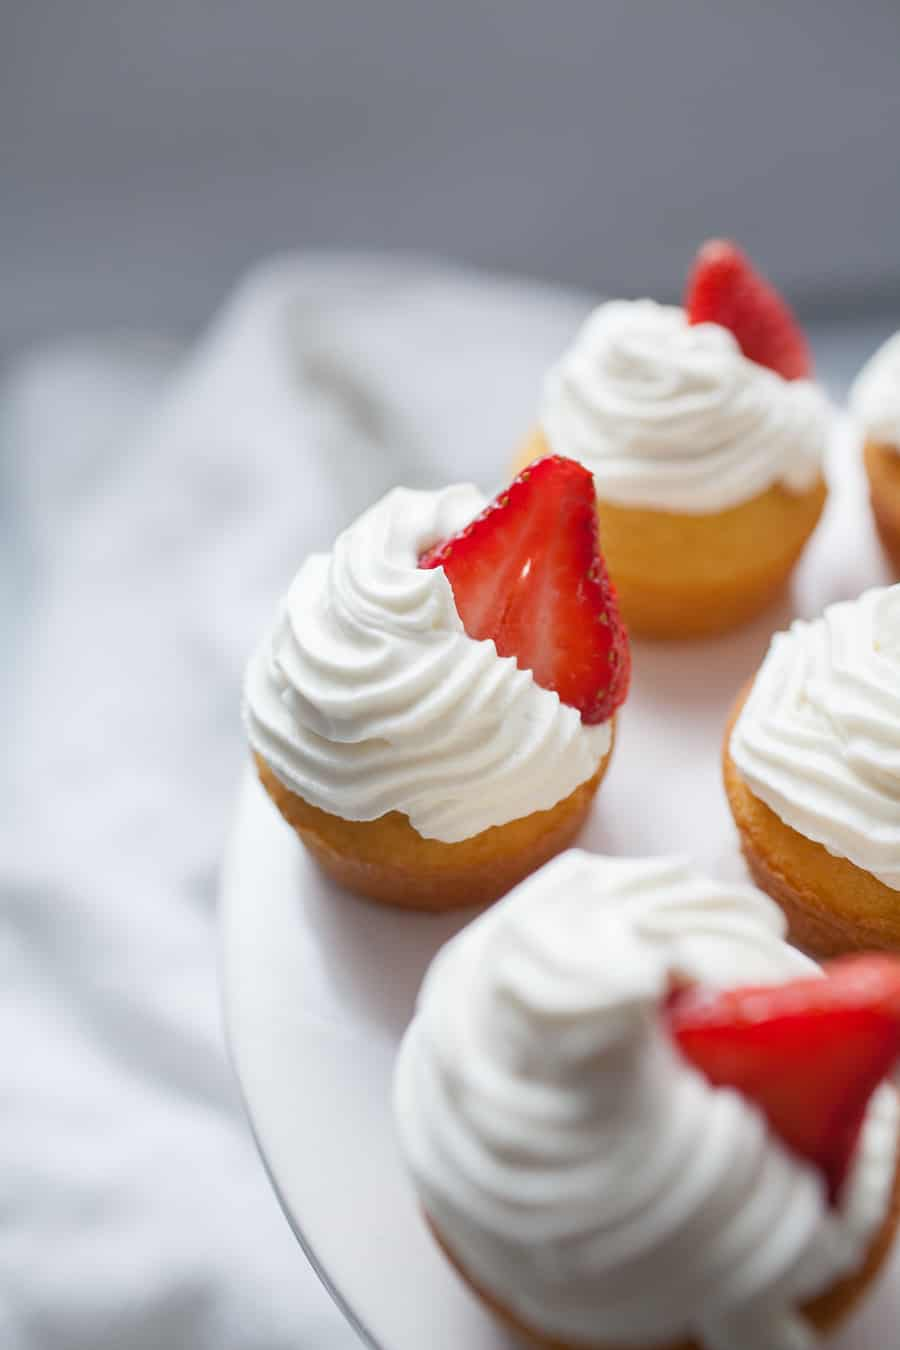 Strawberry Shortcake Cupcakes with Whipped Cream Frostingare the perfect dessert for any occasion. These cupcakes are light and fluffy and bring the experience of eating strawberry shortcake into a cupcake! Spruce up a boxed cake mix with a few add ins and your own homemade whipped cream icing that tastes just like the real thing. Top with a slice of fresh strawberry and you're ready to share these cupcakes over a cup of coffee with friends!